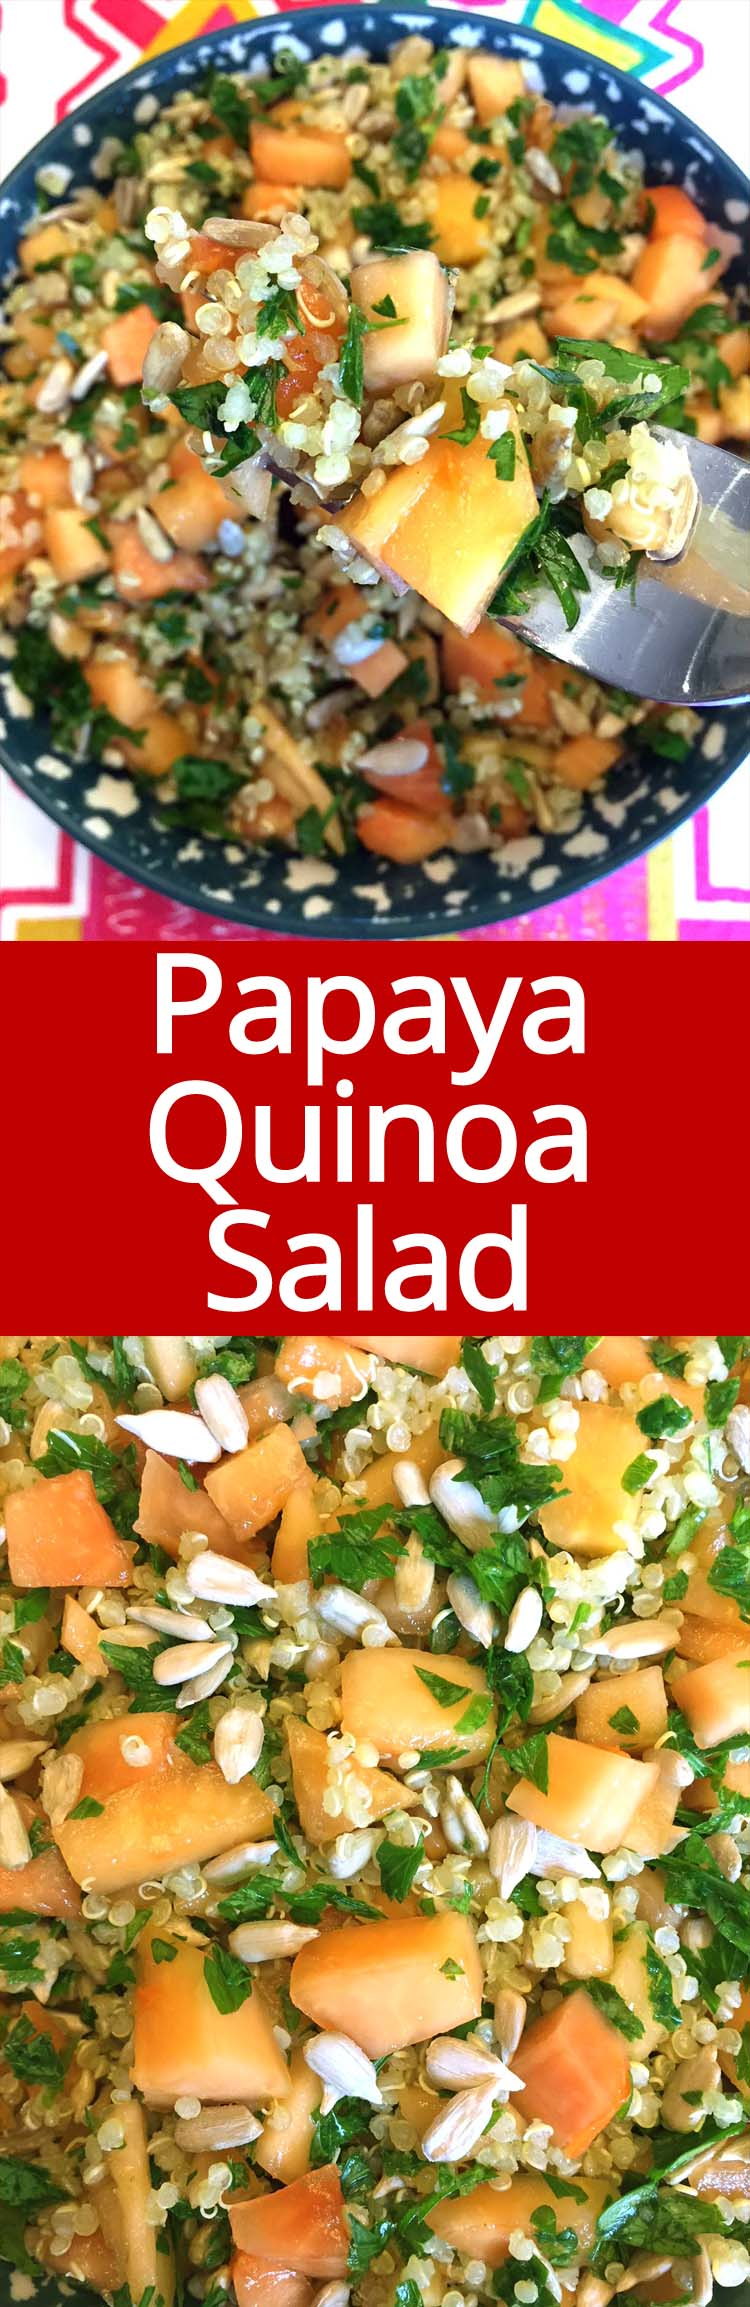 I love this papaya quinoa salad! So easy to make, healthy and refreshing!  It stays fresh in the fridge for 5 days, perfect for weekly meal prep!